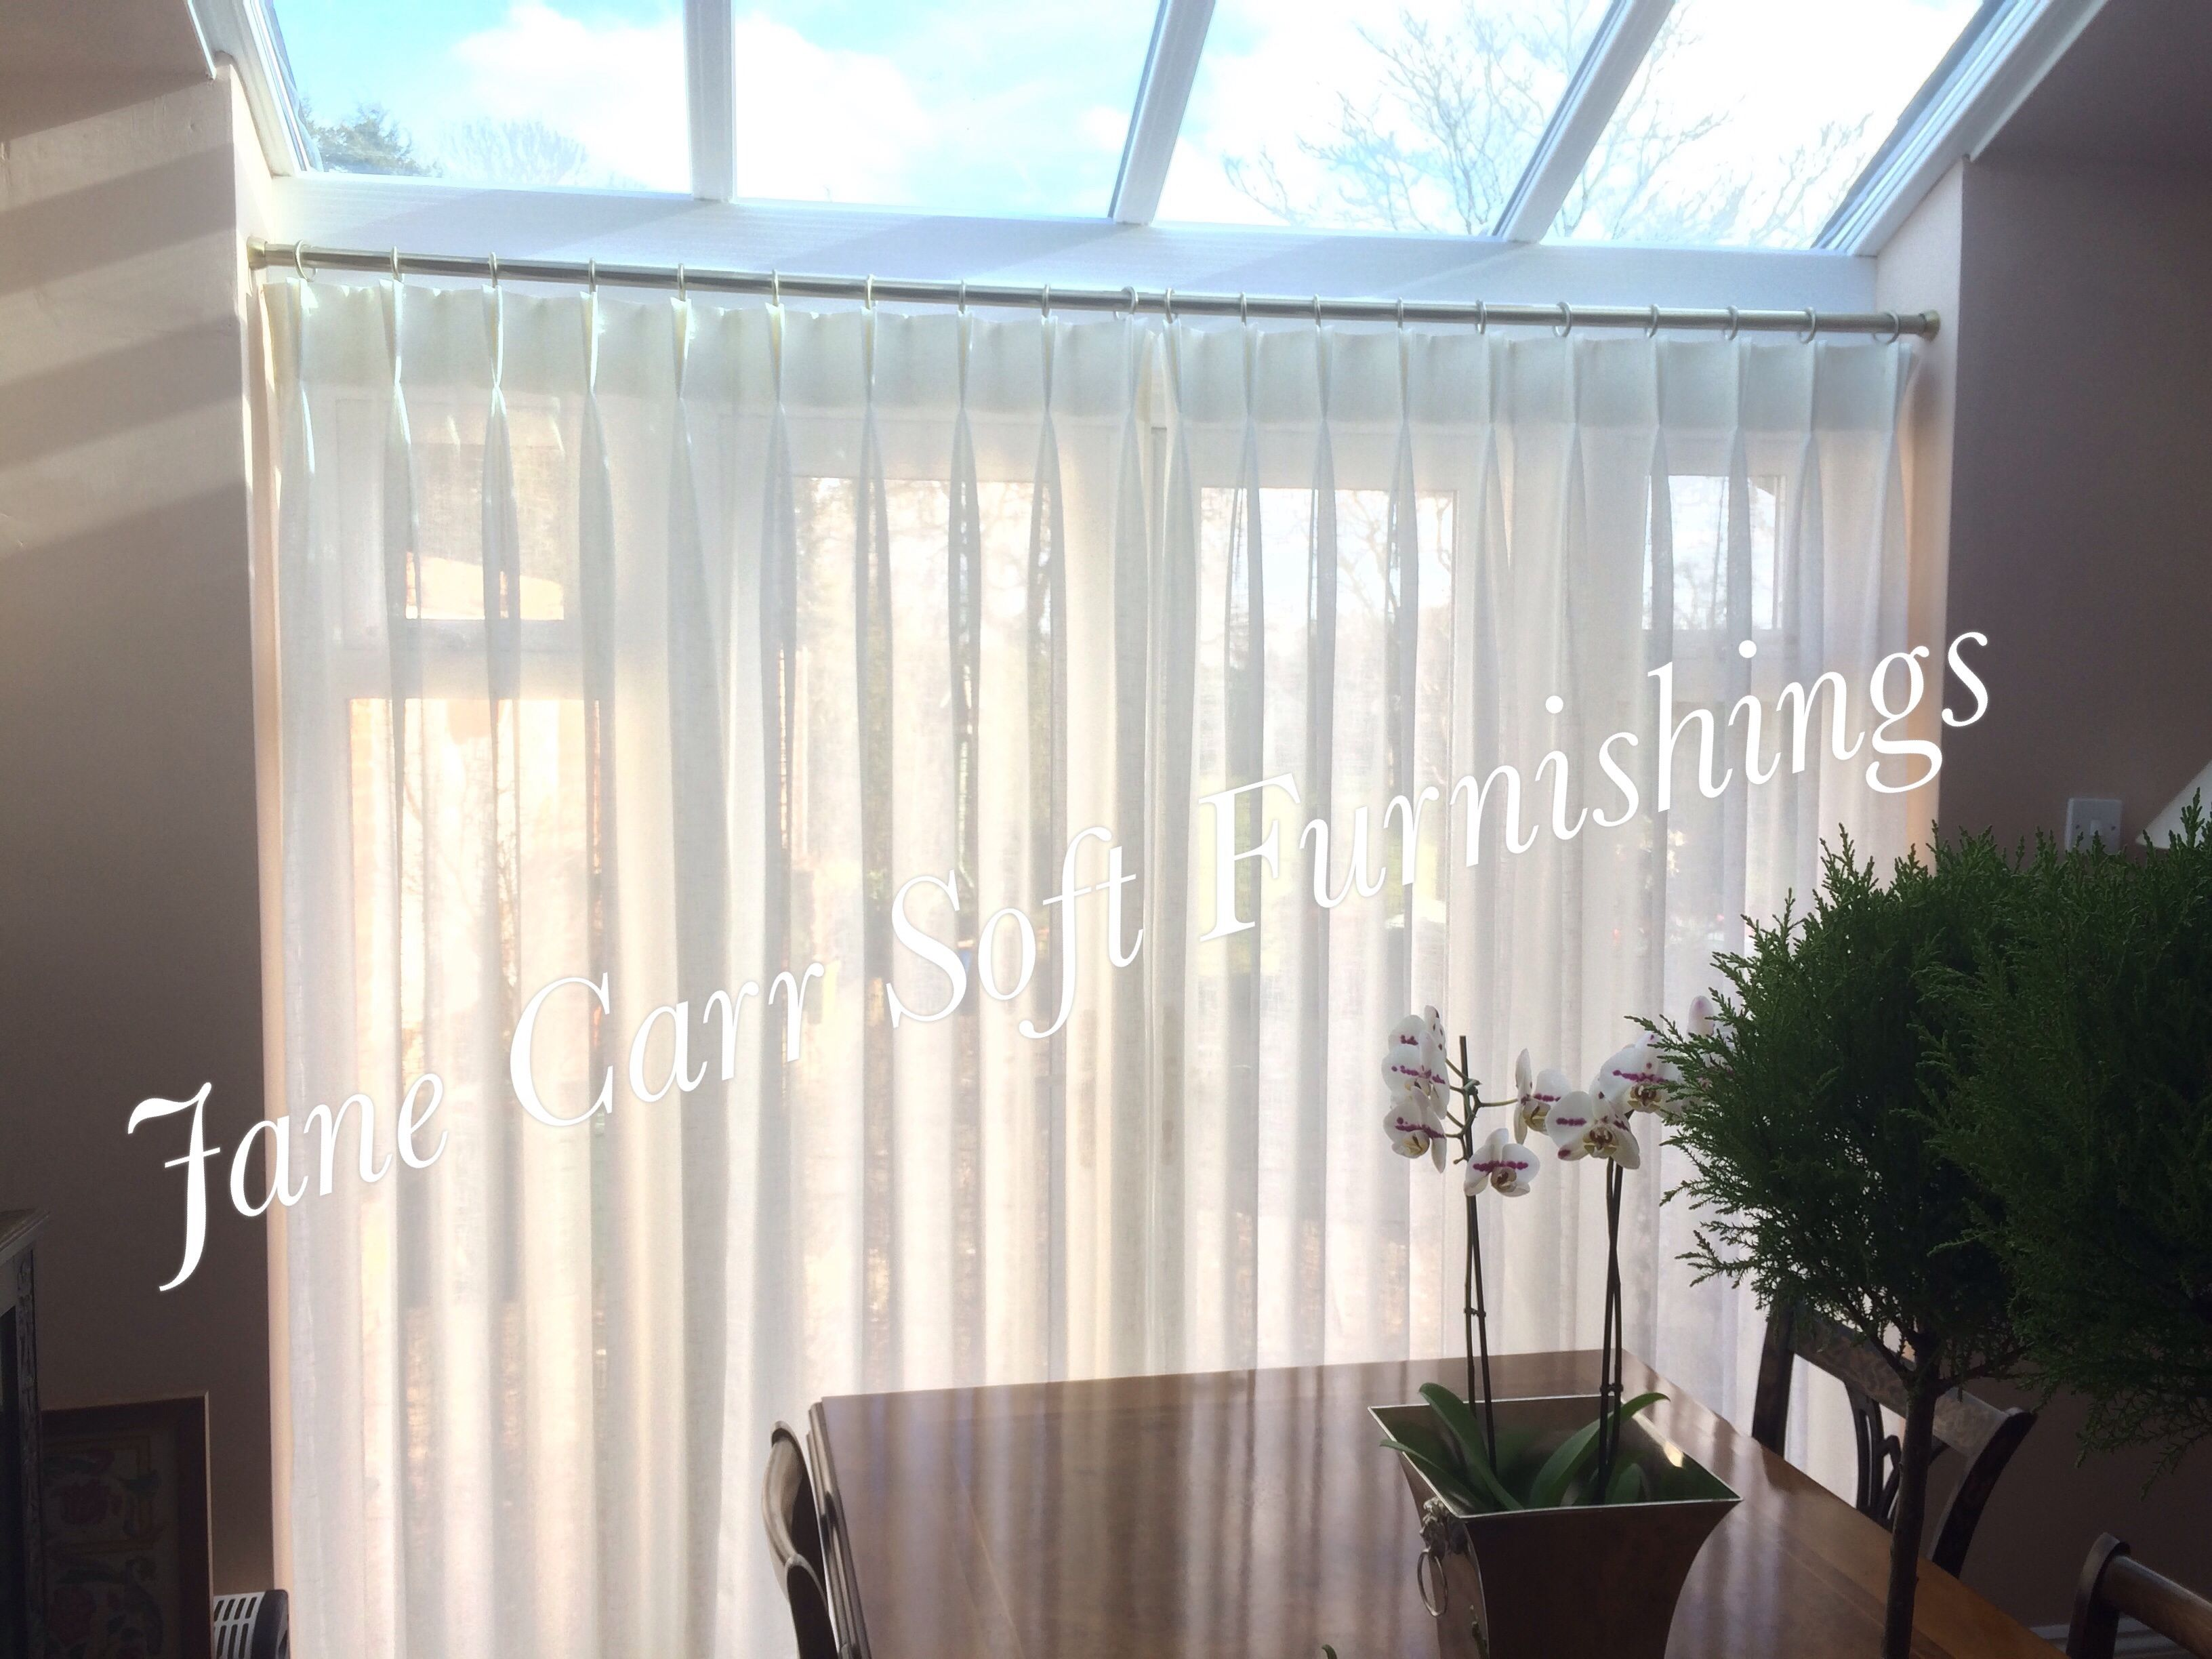 Slot top voile pair olive cheap green curtain voile uk delivery - Double Pinch Pleat Headed Voile Curtains On Recess Fitted Curtain Pole